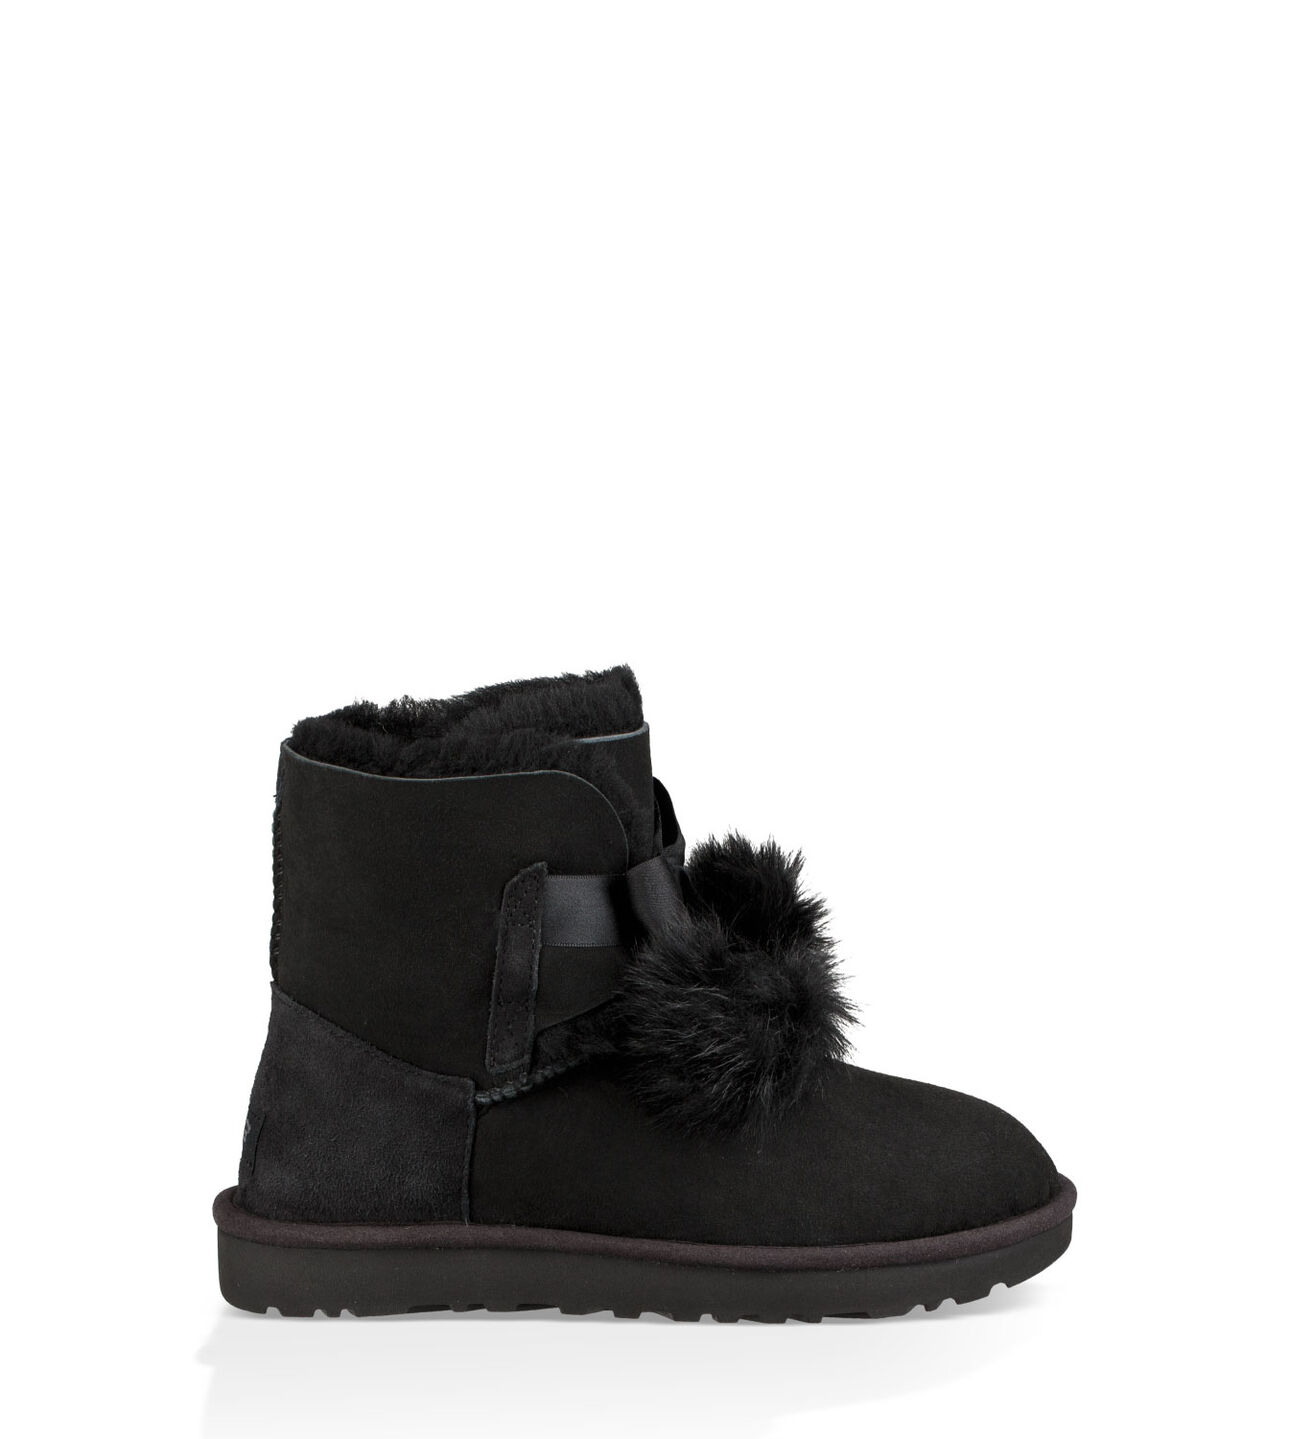 8f6fb7d3f3fc Ugg Boots With Pom Poms